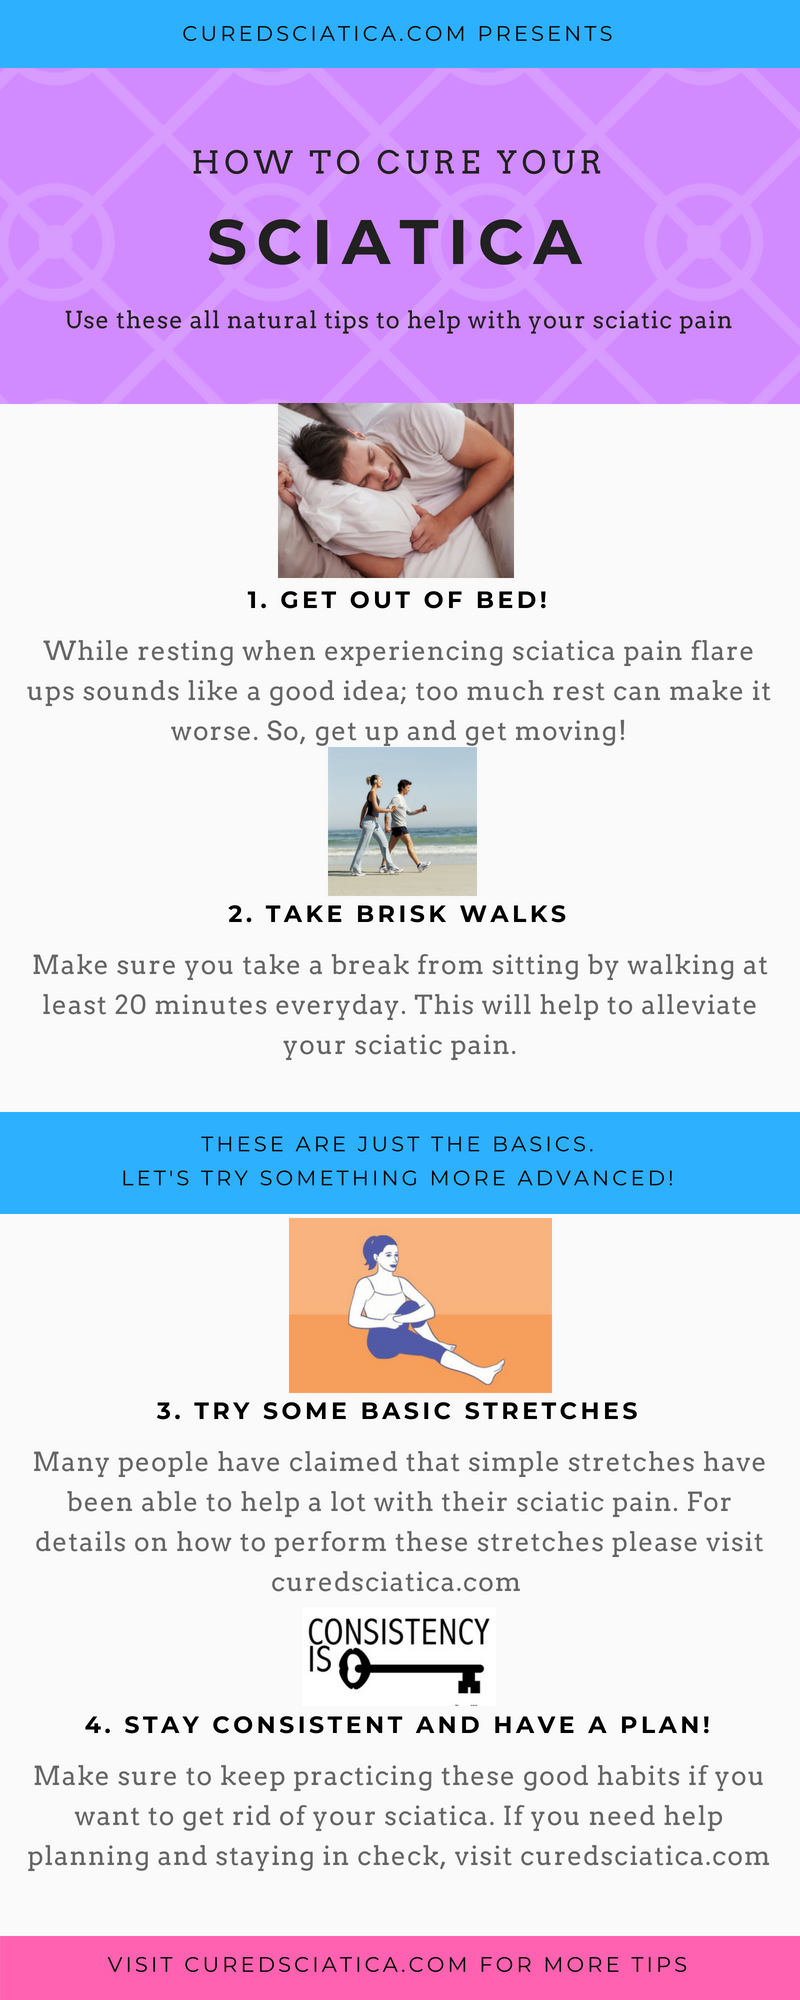 here are some quick tips to help with your sciatica exercises. try